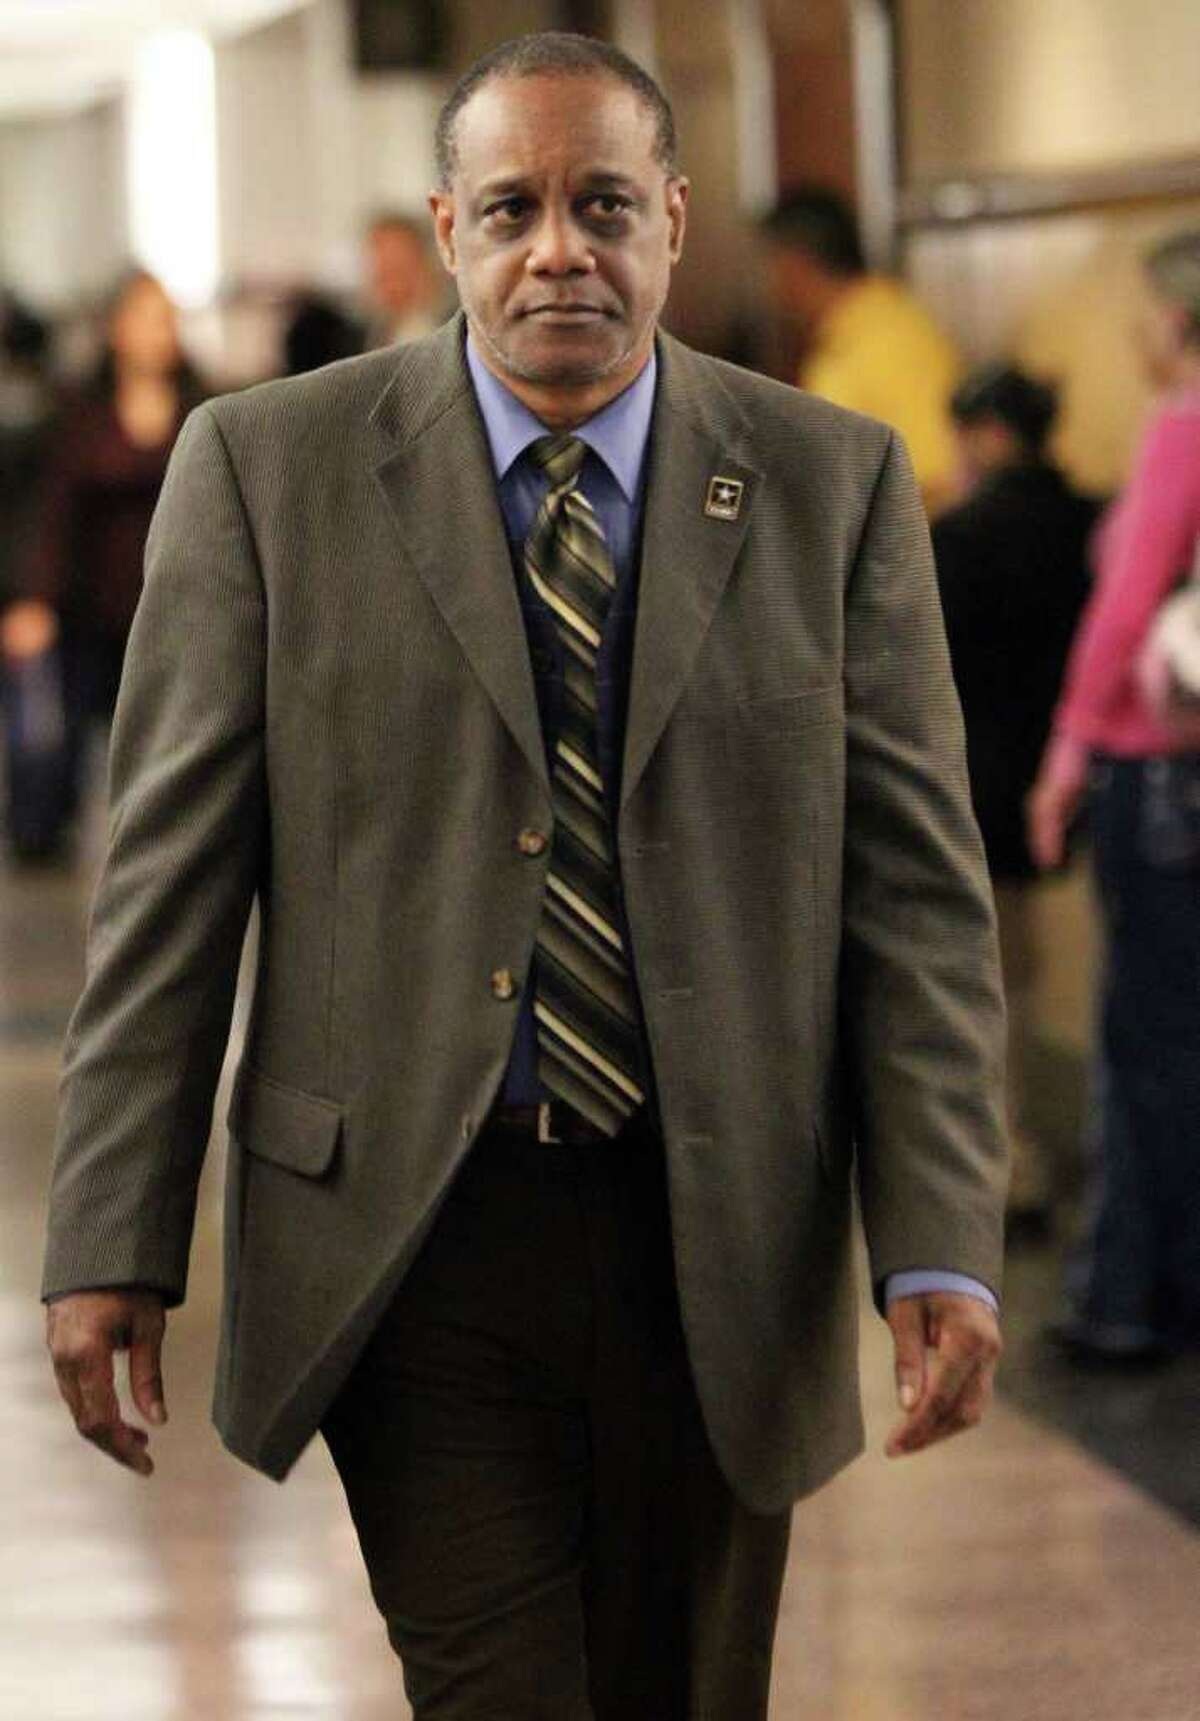 Former Bexar Democratic Party treasurer Dwayne Adams was convicted of theft and misapplication of fiduciary property.